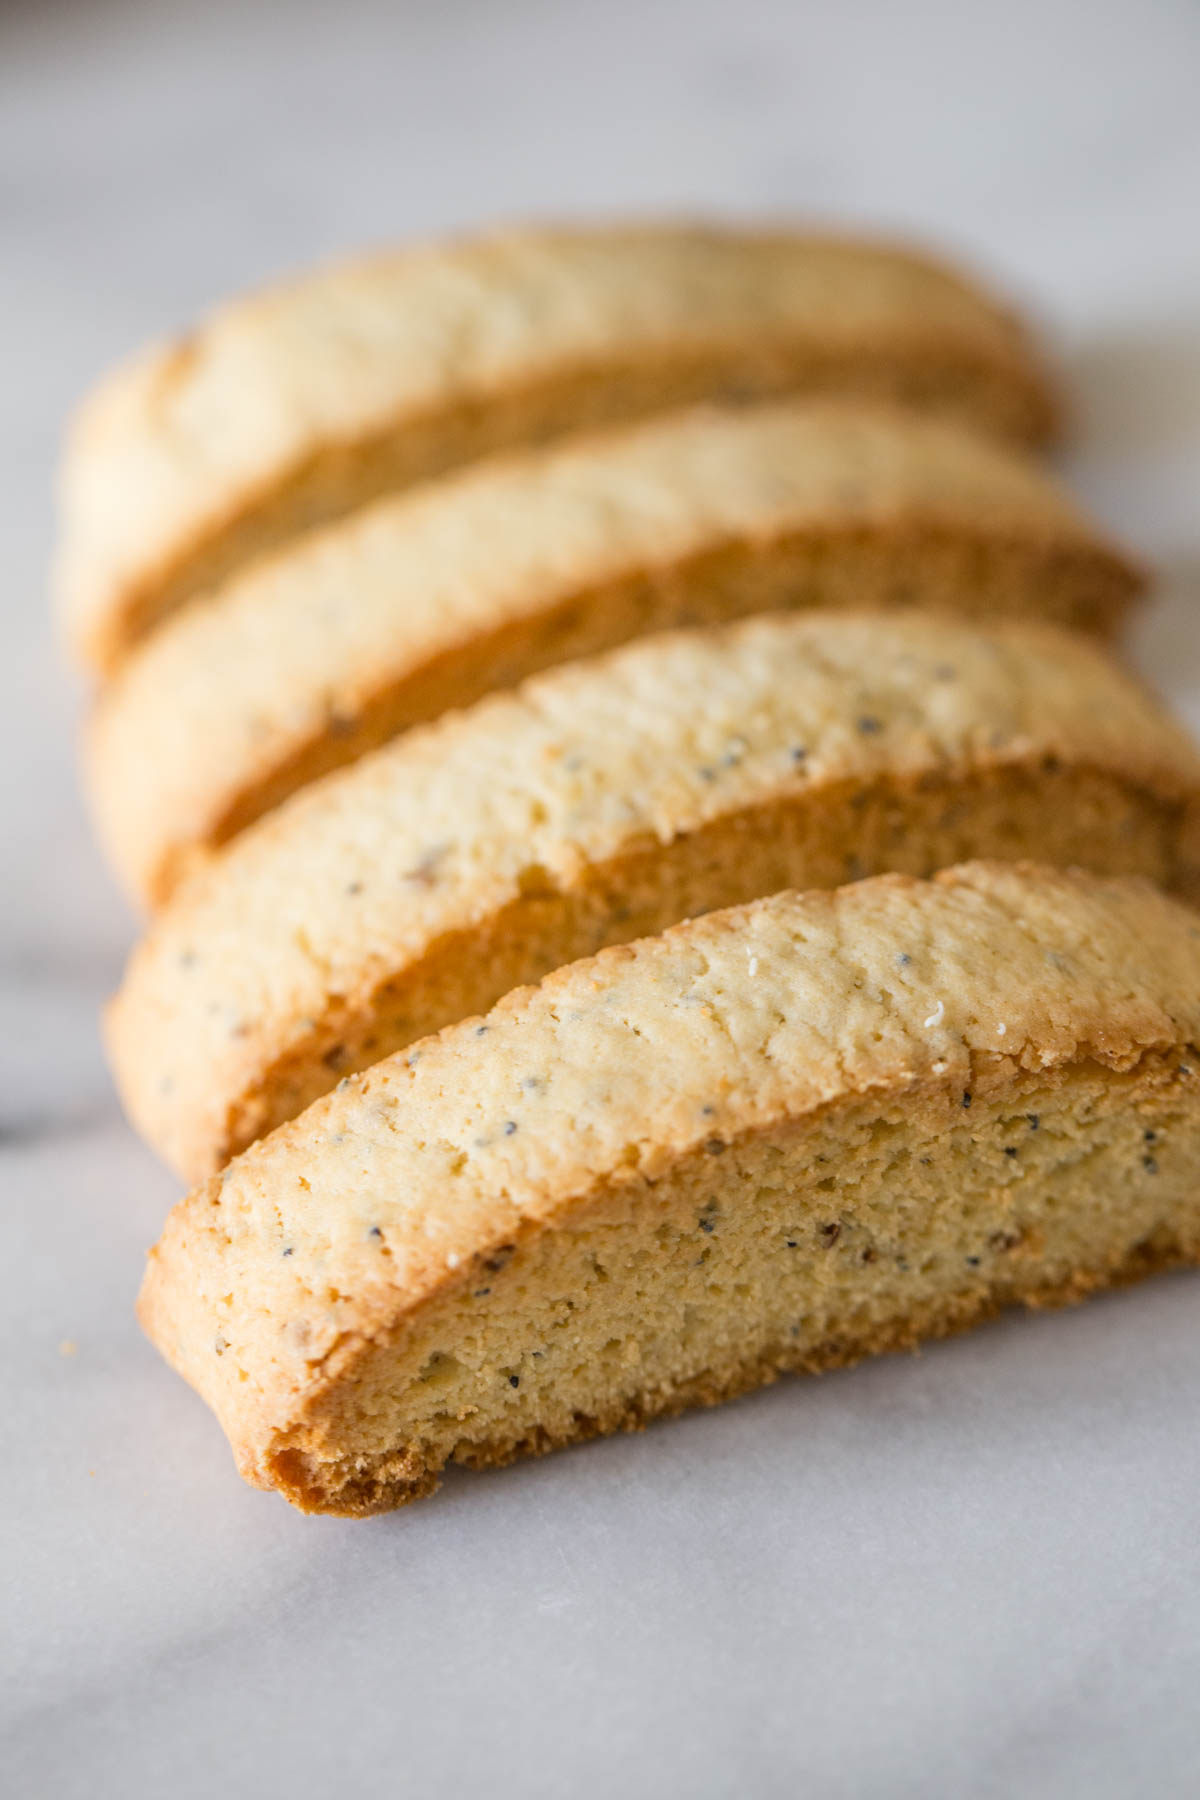 These Almond Poppy Seed Biscotti turned out perfectly the very first time I made them, and I've made four batches since. So crisp and buttery!